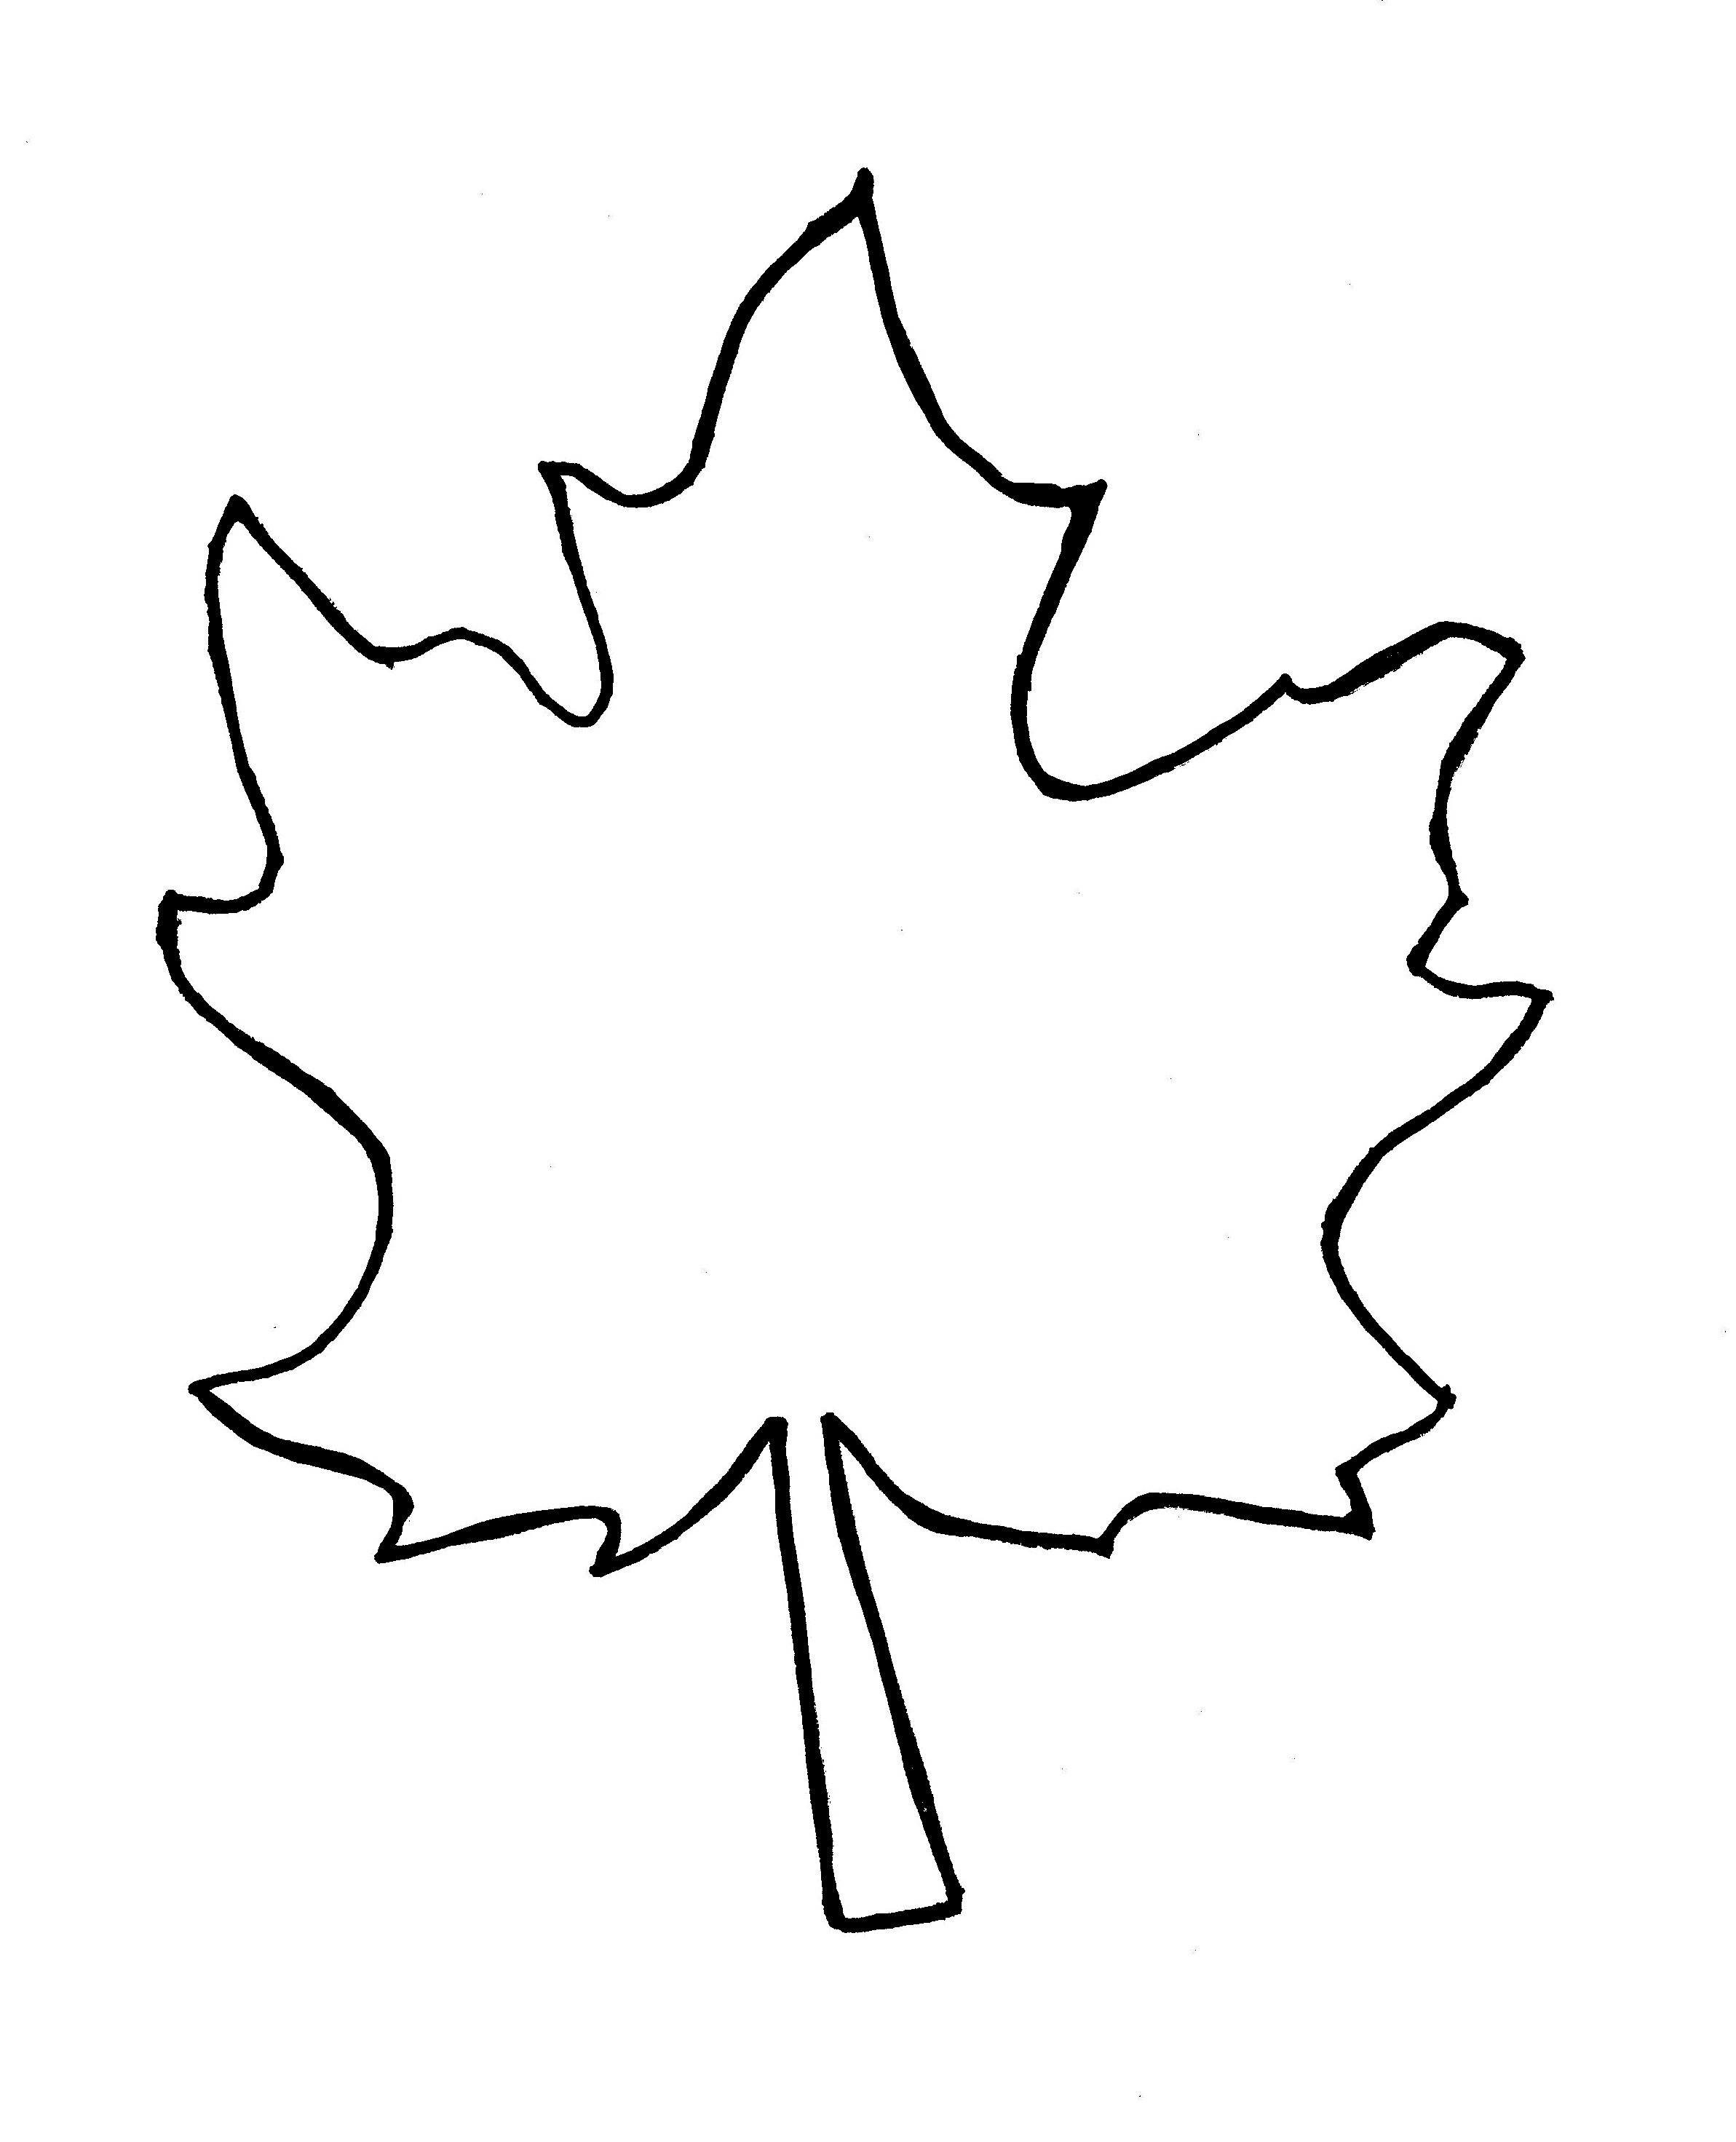 Free Autumn Leaf Outline Download Free Clip Art Free Clip Art On Clipart Library